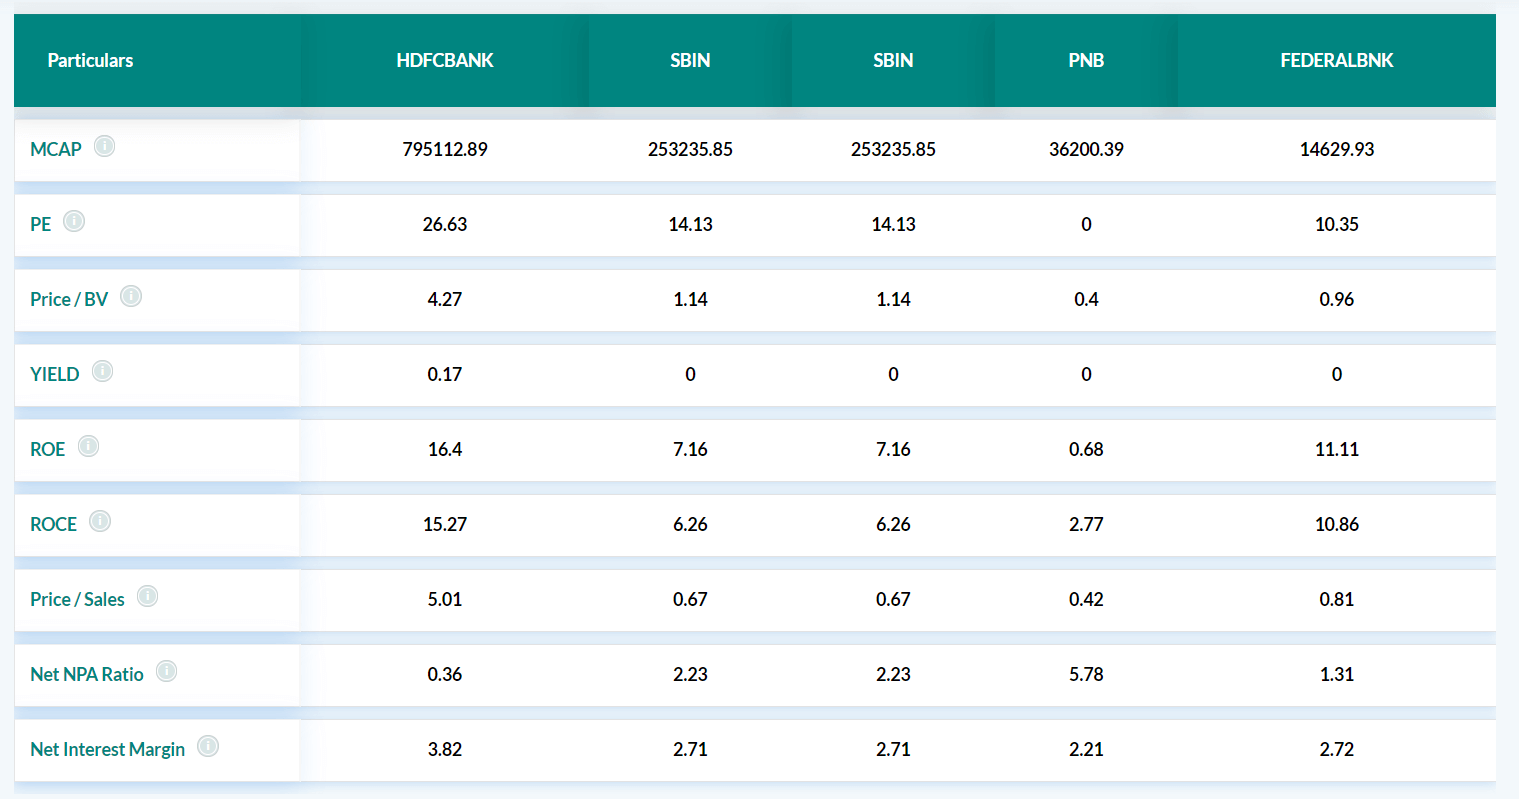 Bank Comparision since March 2020